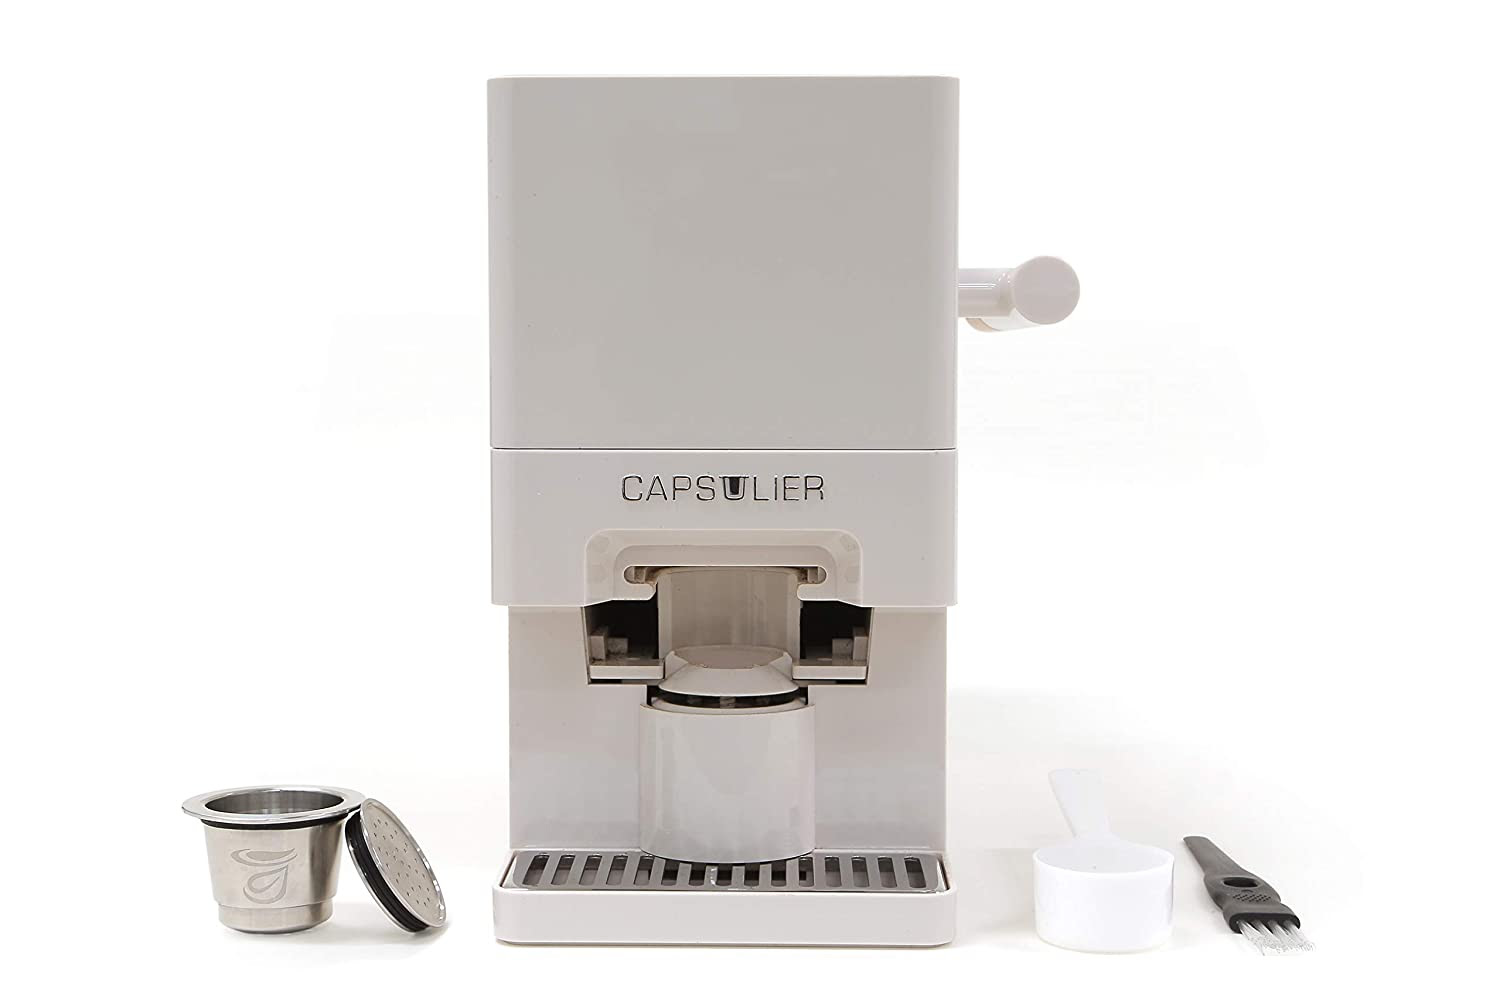 Capsulier - Better Coffee, No Waste.